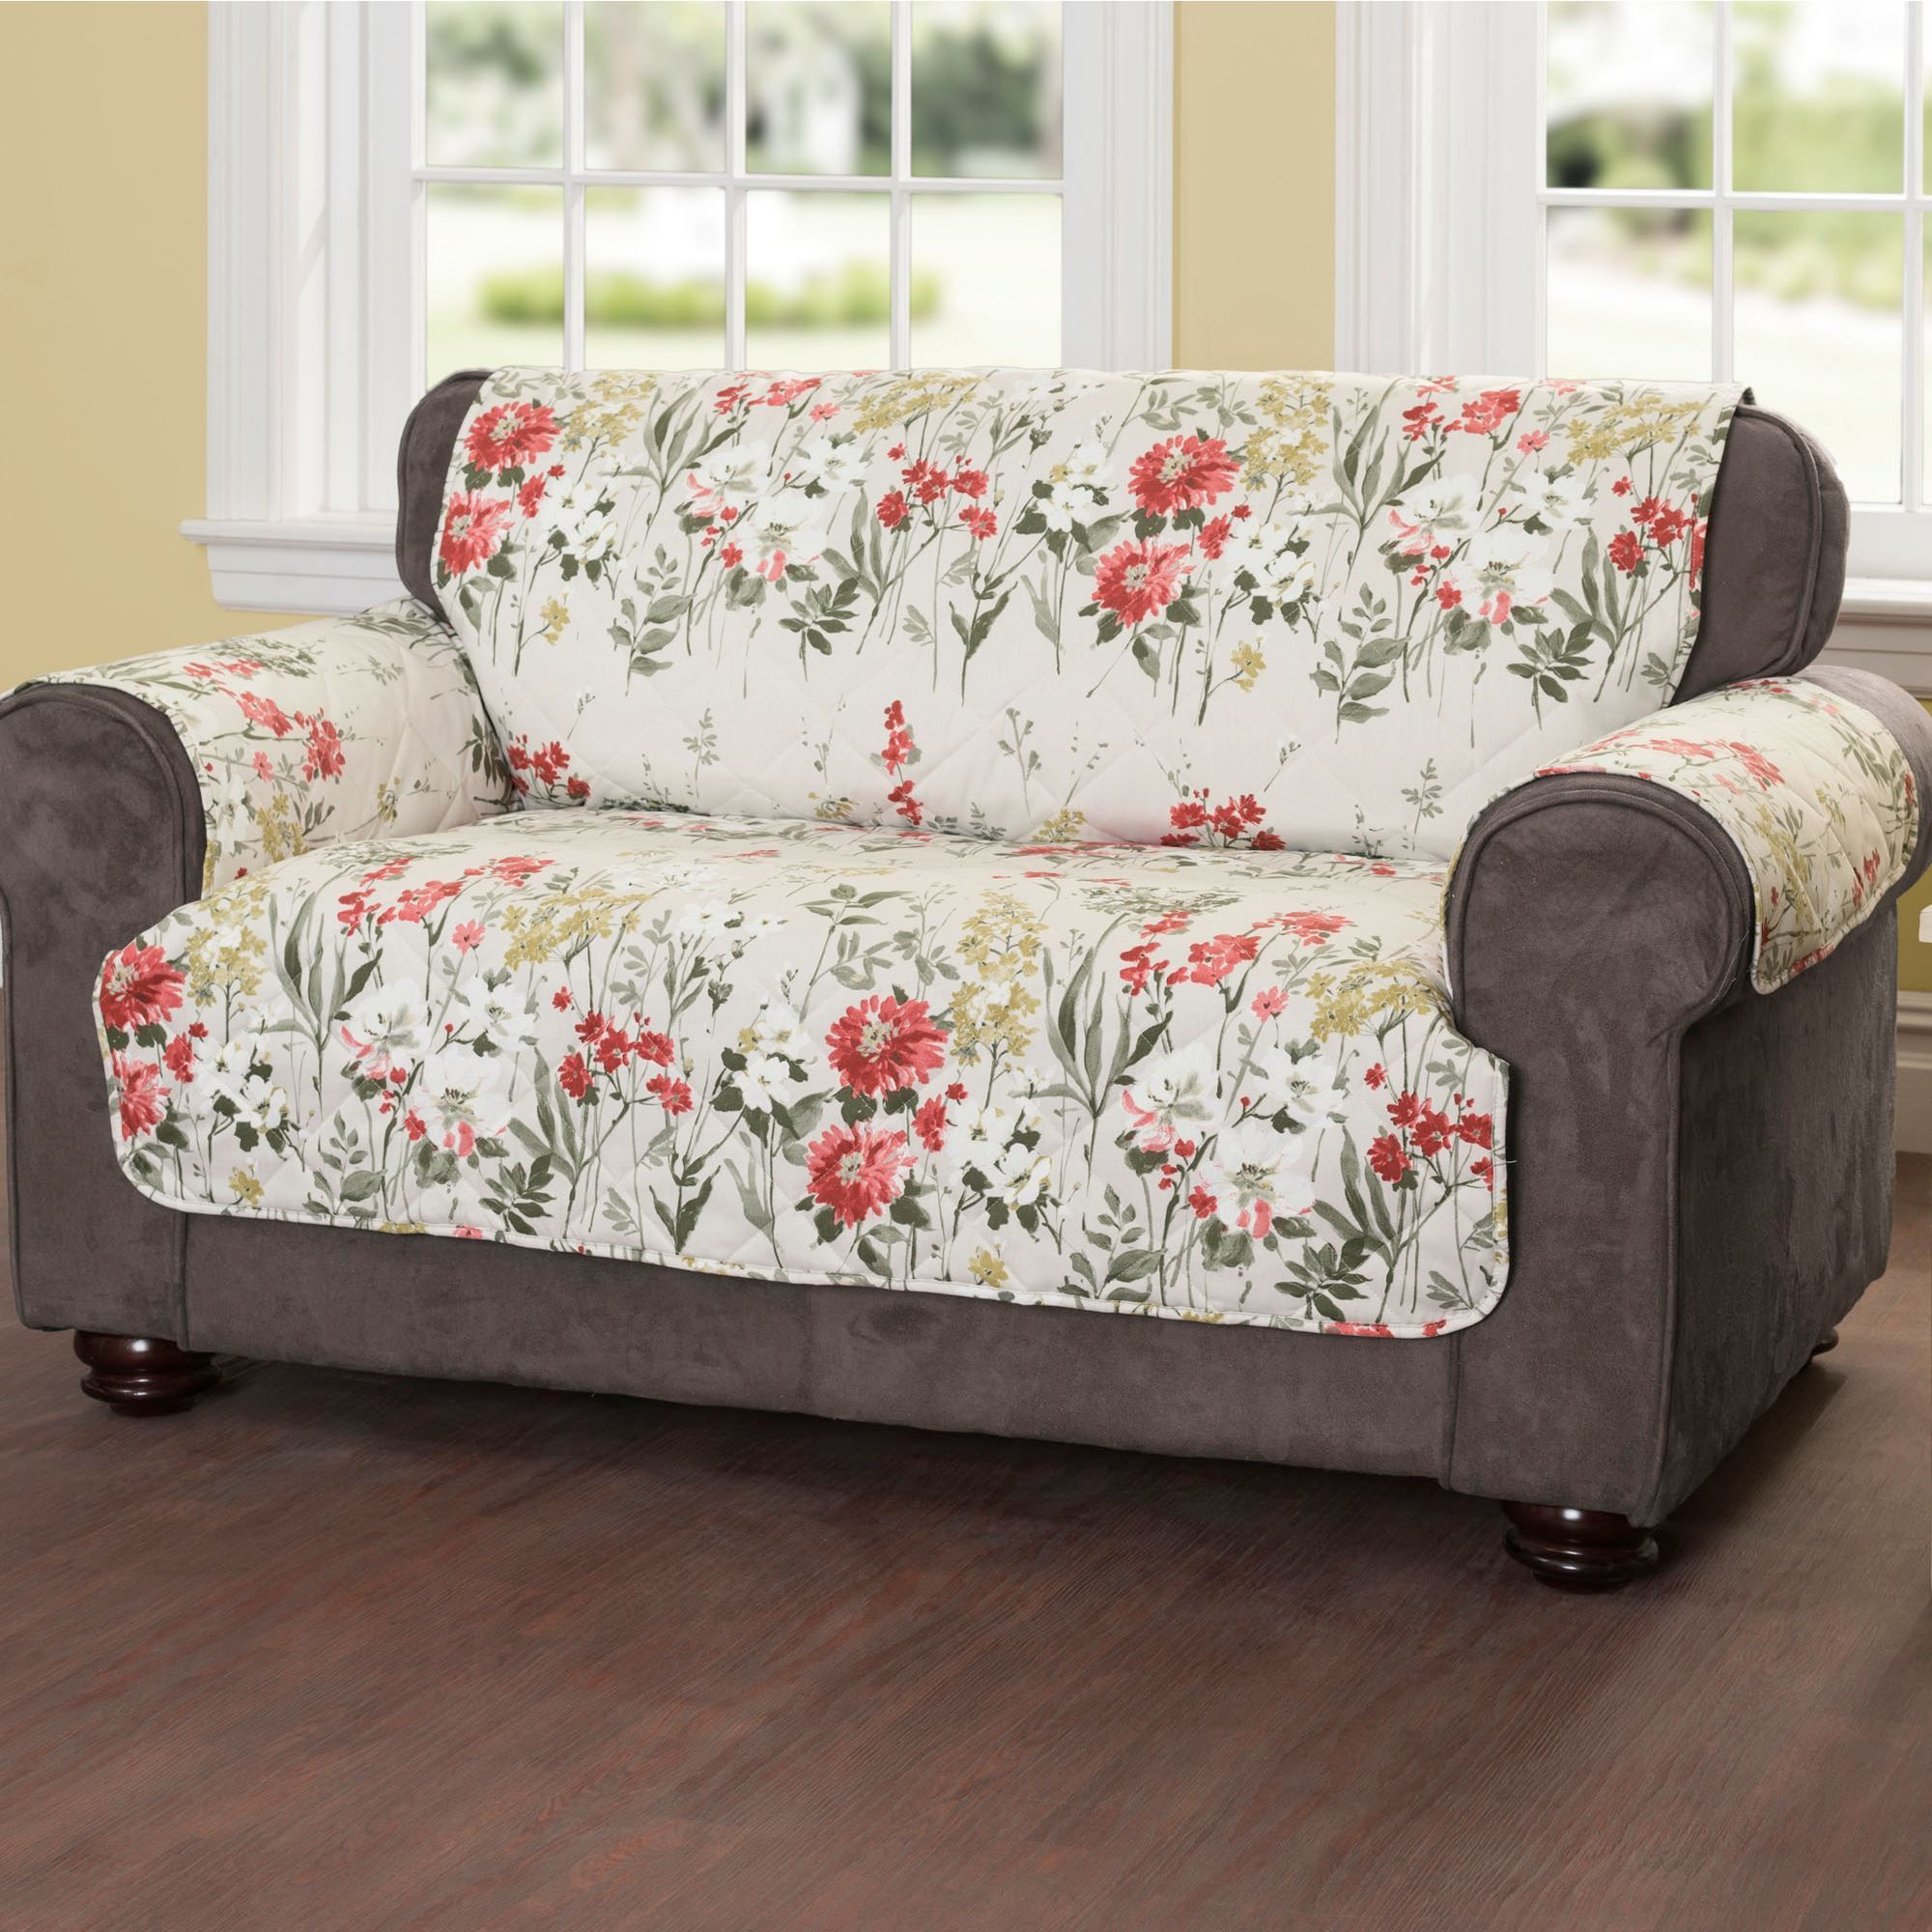 Image Result For How To Put On A Sure Fit Sofa Cover